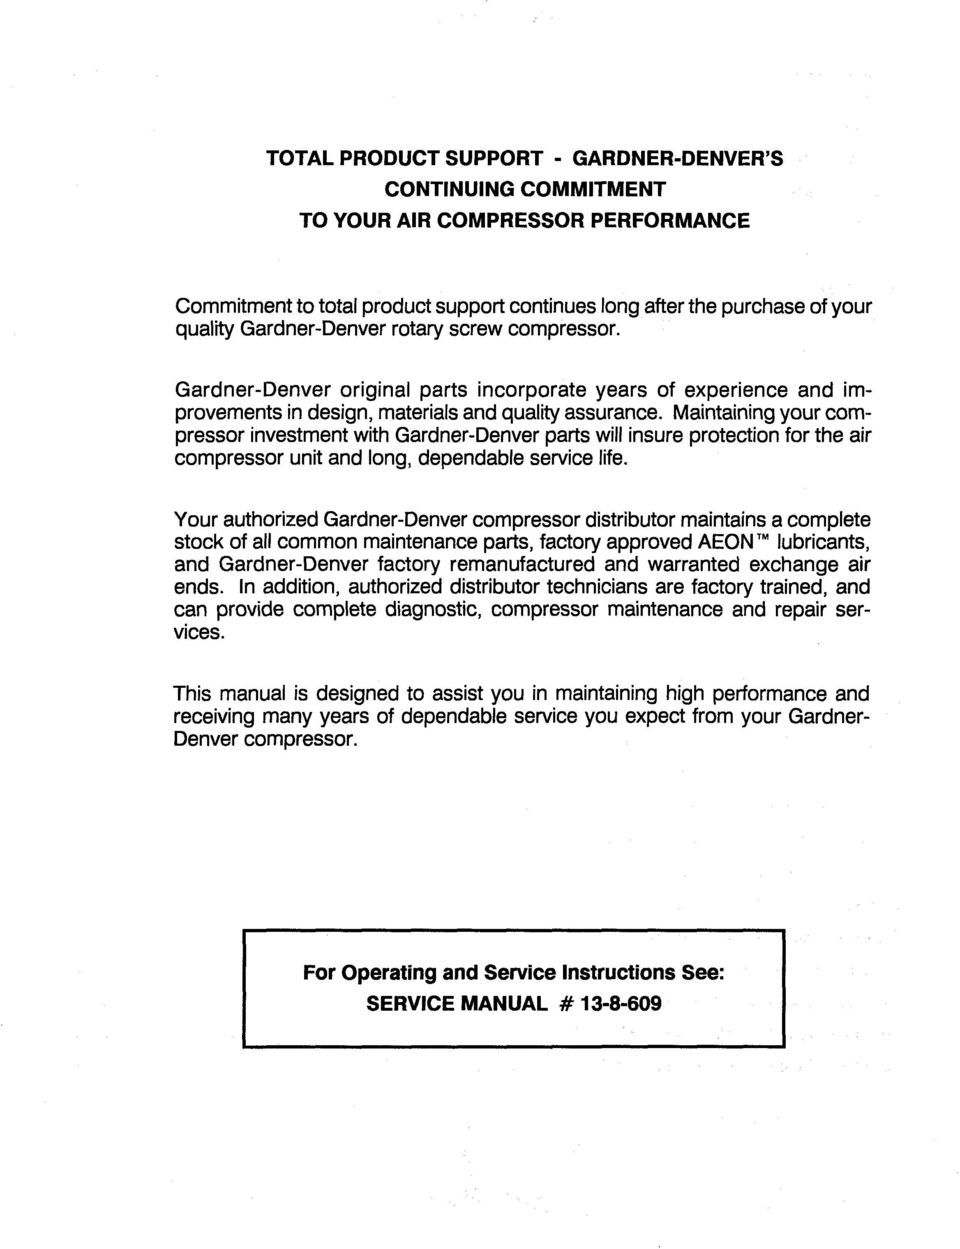 Maintaining your compressor investment with Gardner-Denver parts will  insure protection for the air compressor